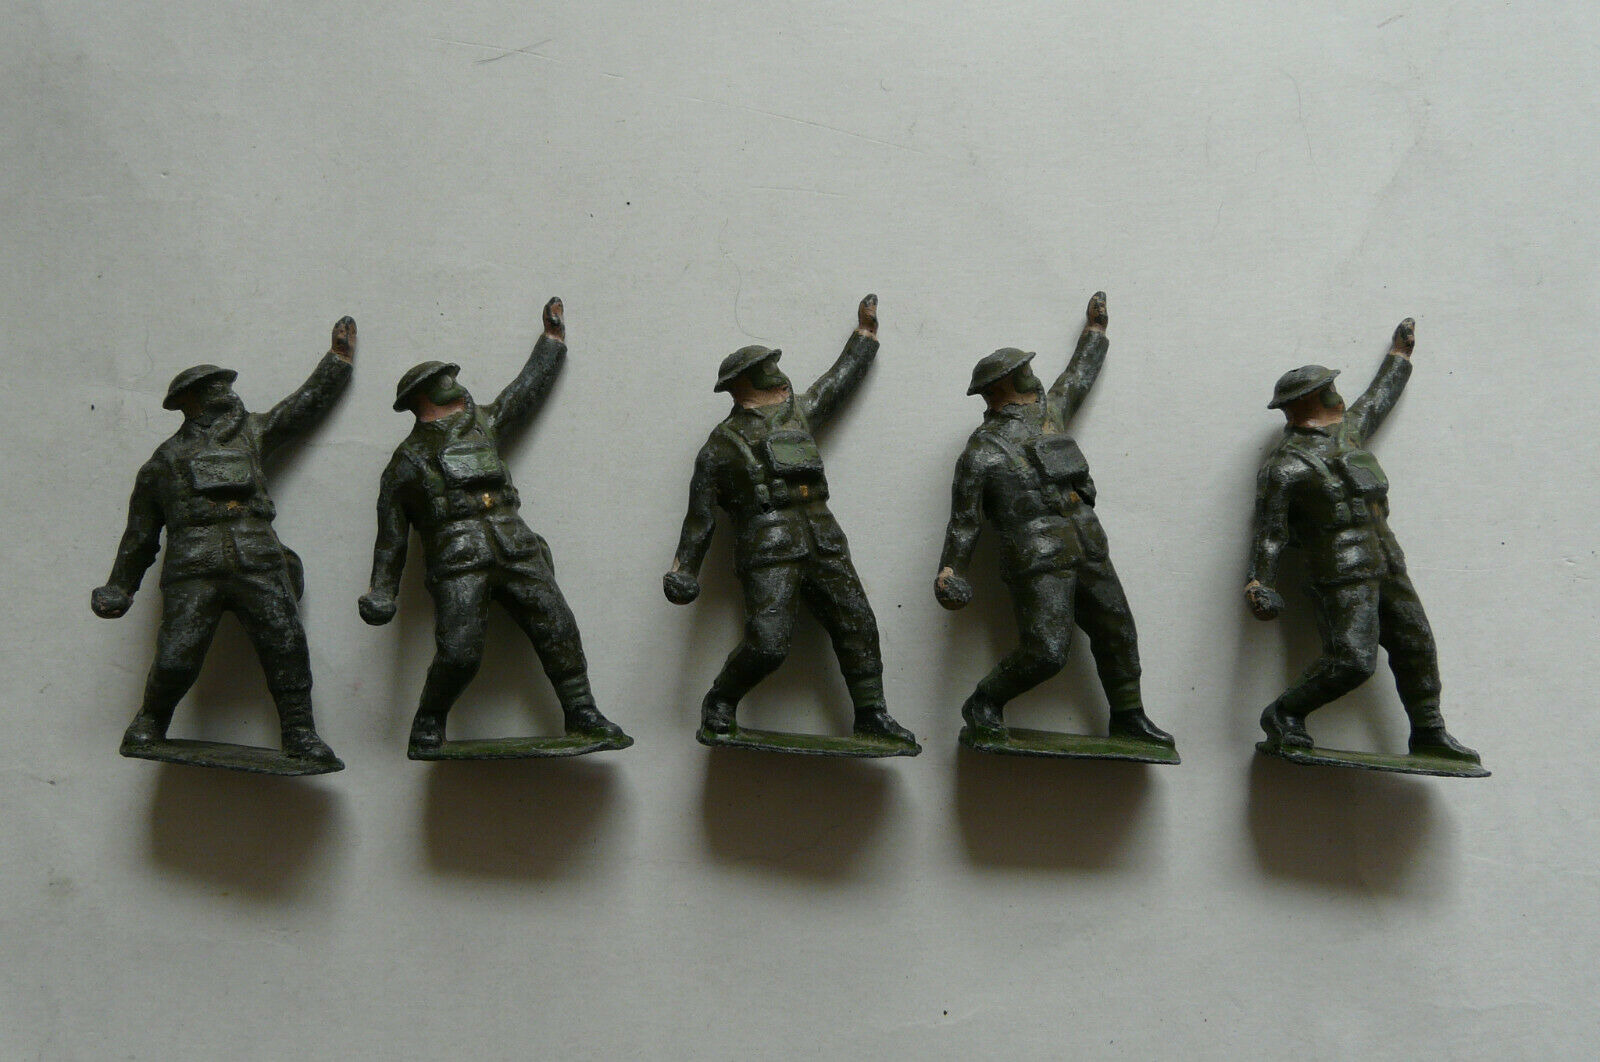 Vintage Britains Lead Soldiers in Gas Masks Throwing Grenade